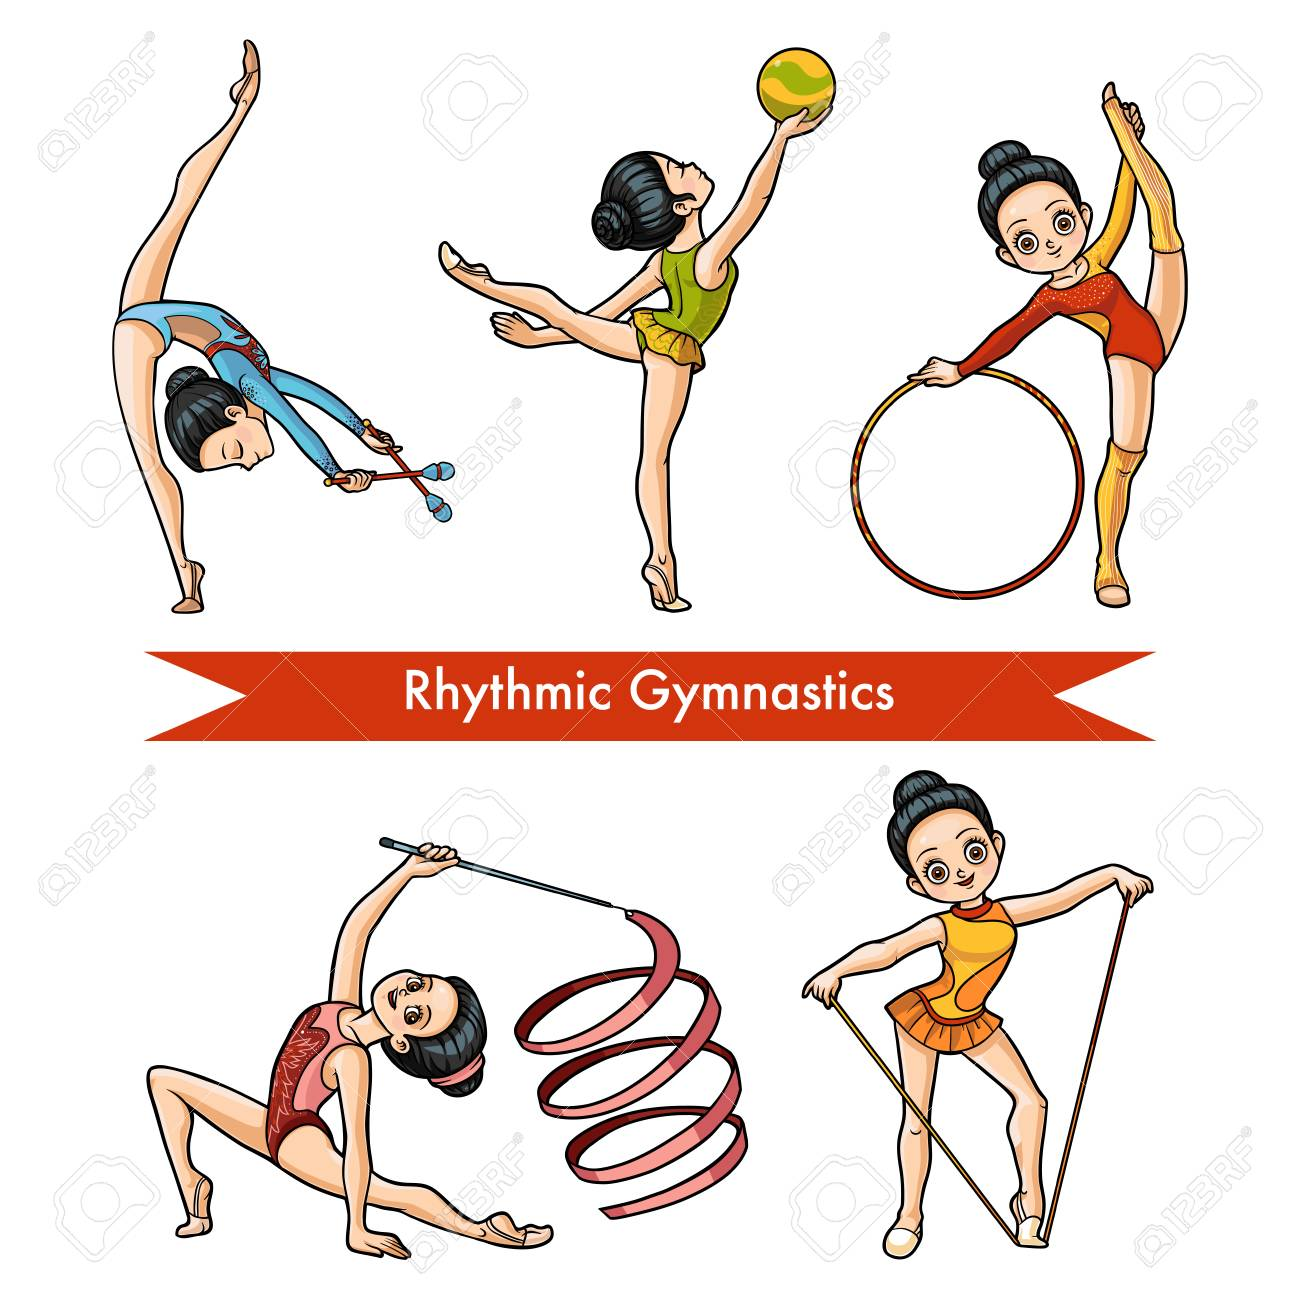 Image result for rhythmic gymnastics cartoon